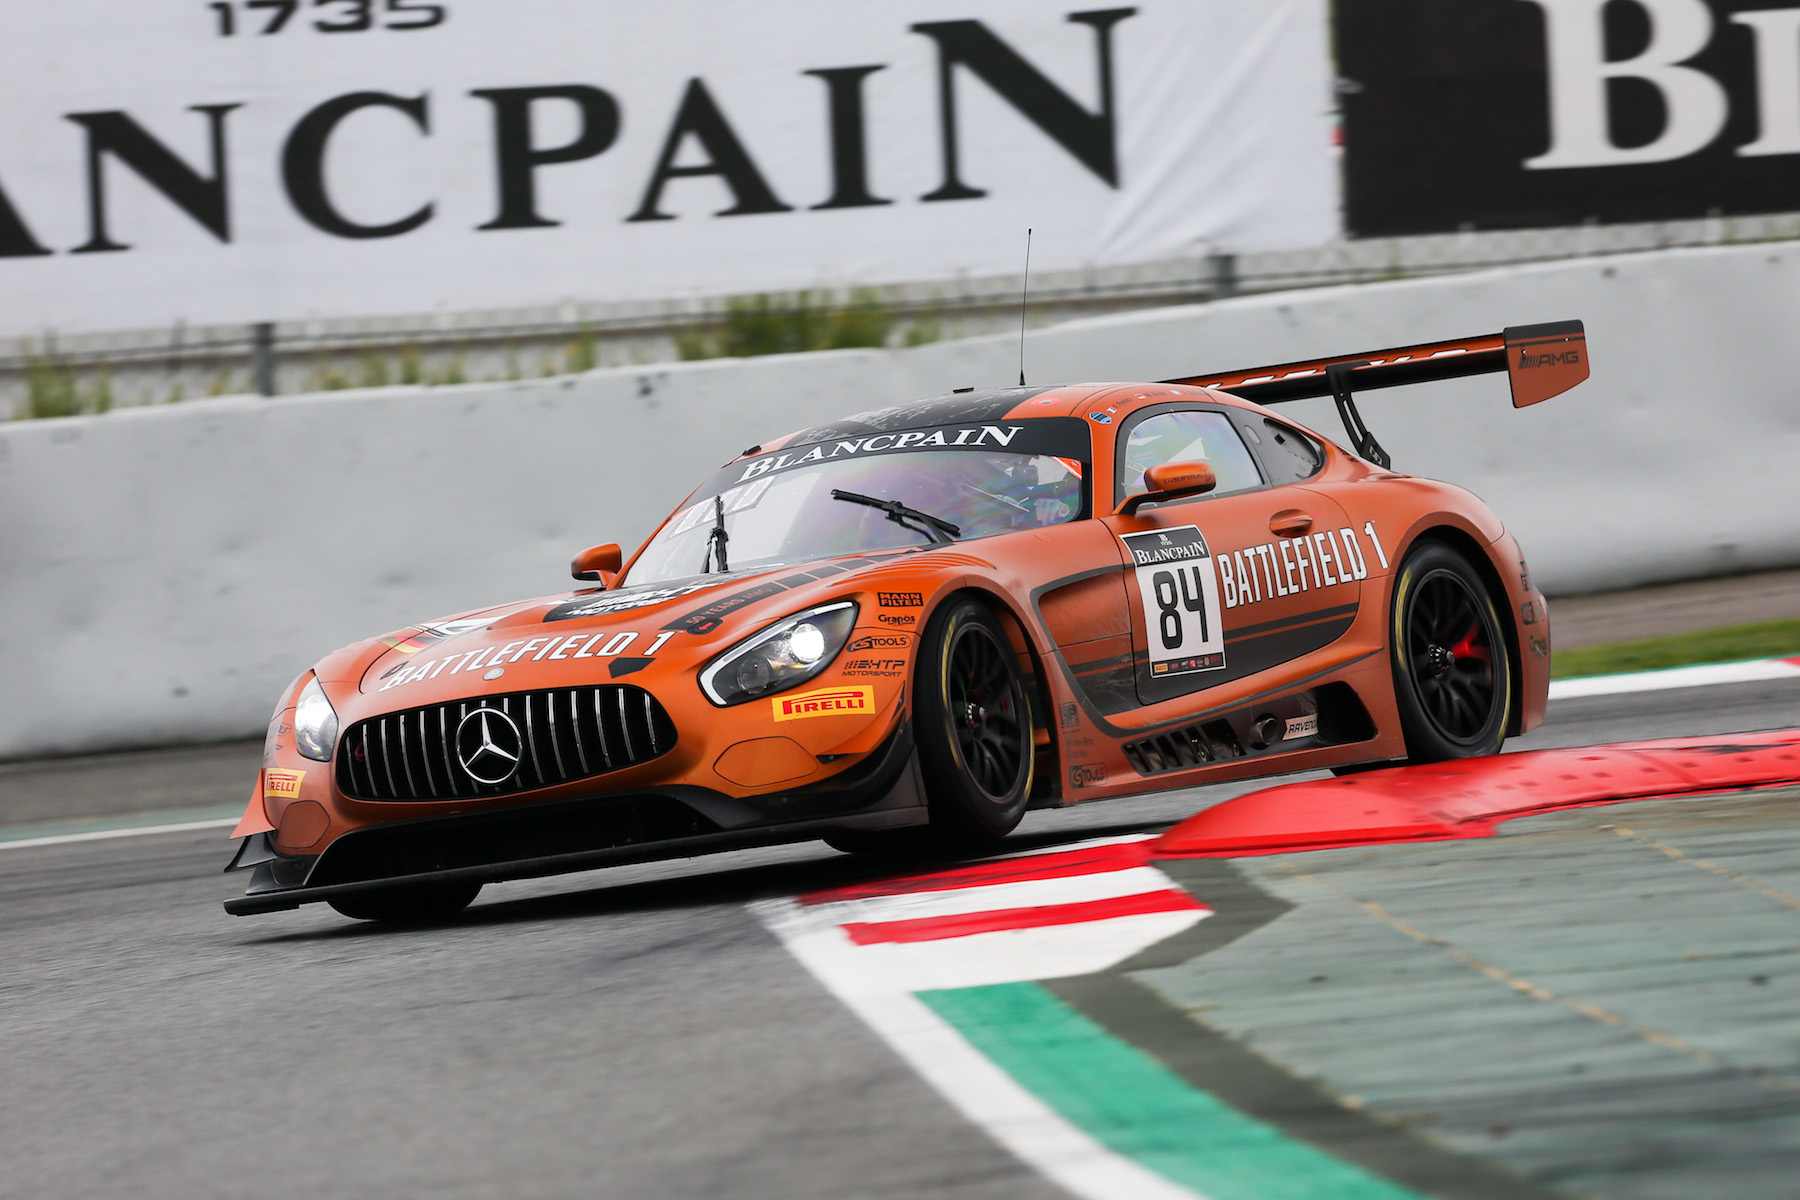 Jimmy Eriksson clinches third overall in 2017 Blancpain GT Series Endurance Cup